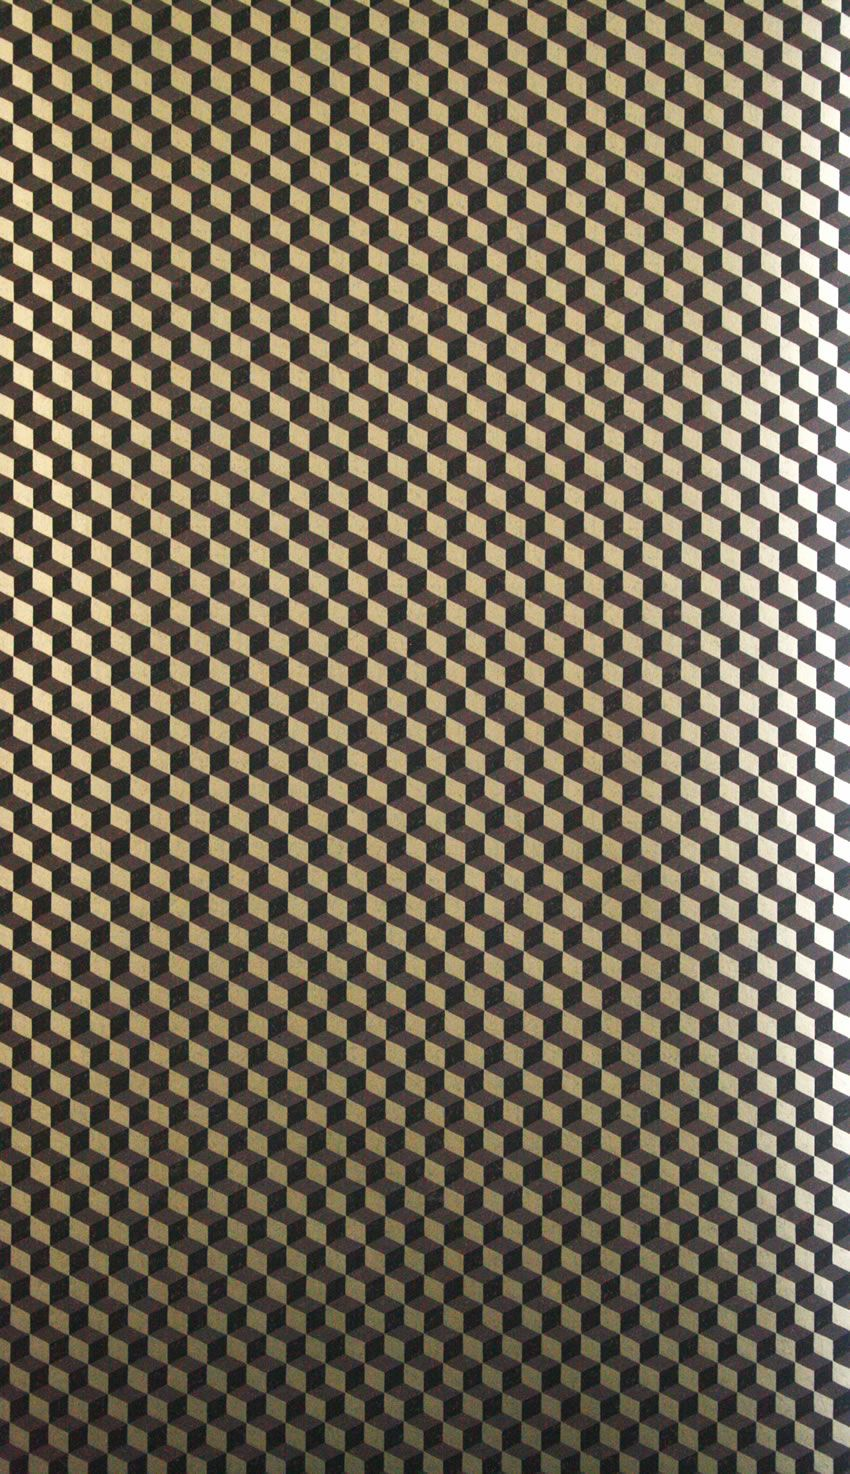 """Osborne & Little: """"Ravenna Wallcovering"""". Teatro Wallpapers. Small-scale cubes in mosaic layout."""